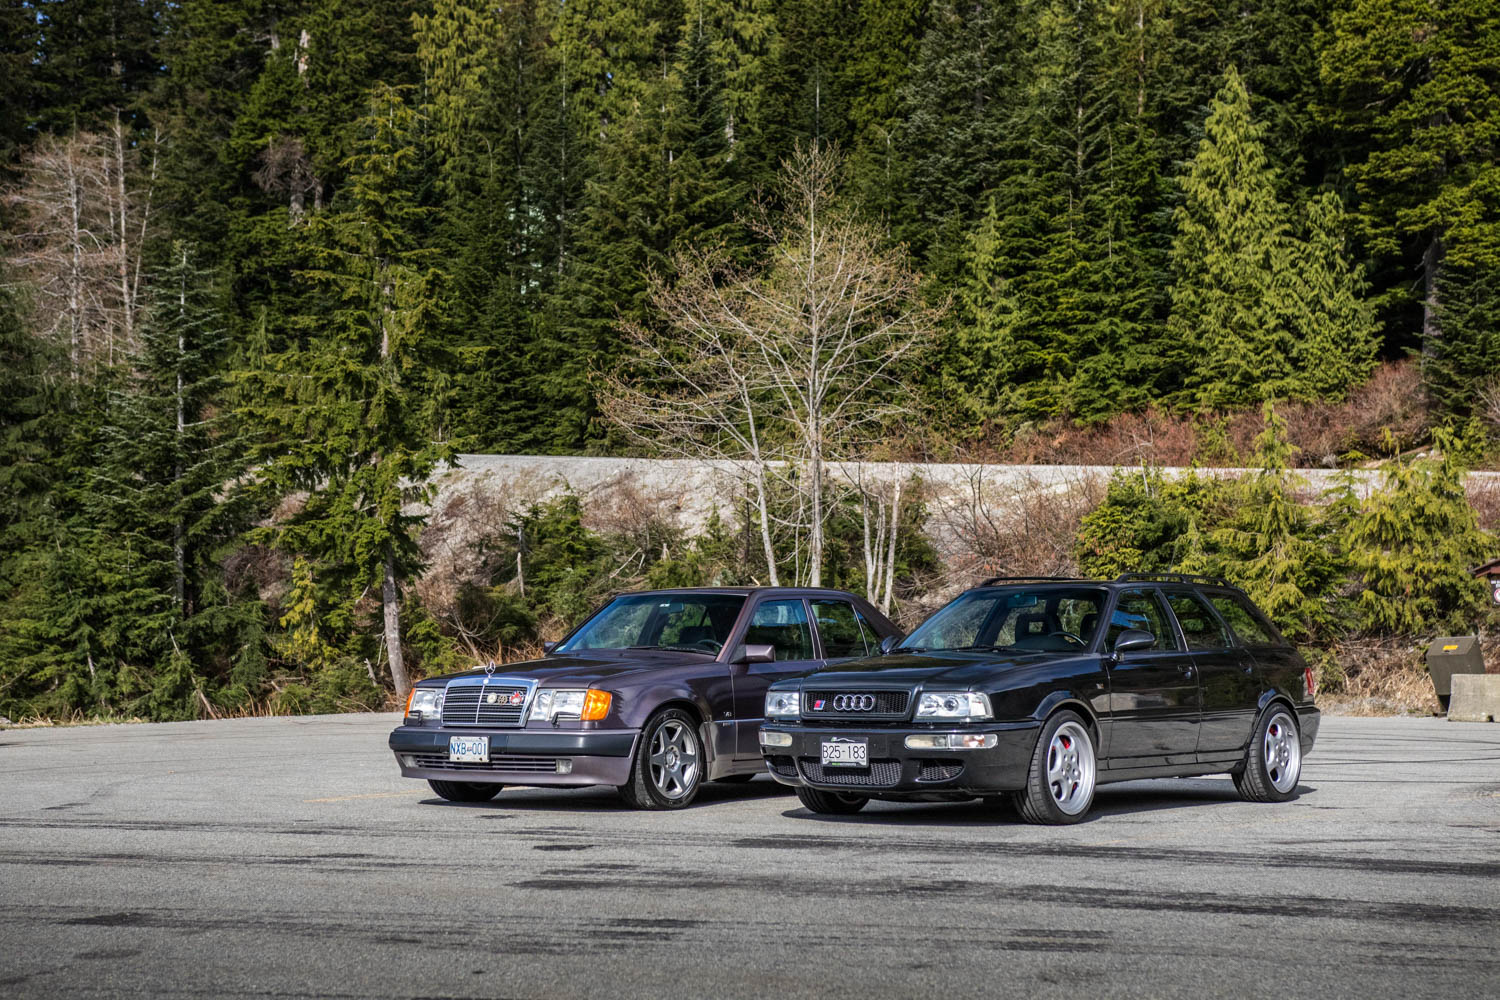 Mercedes-Benz 500E and Audi RS2 front 3/4